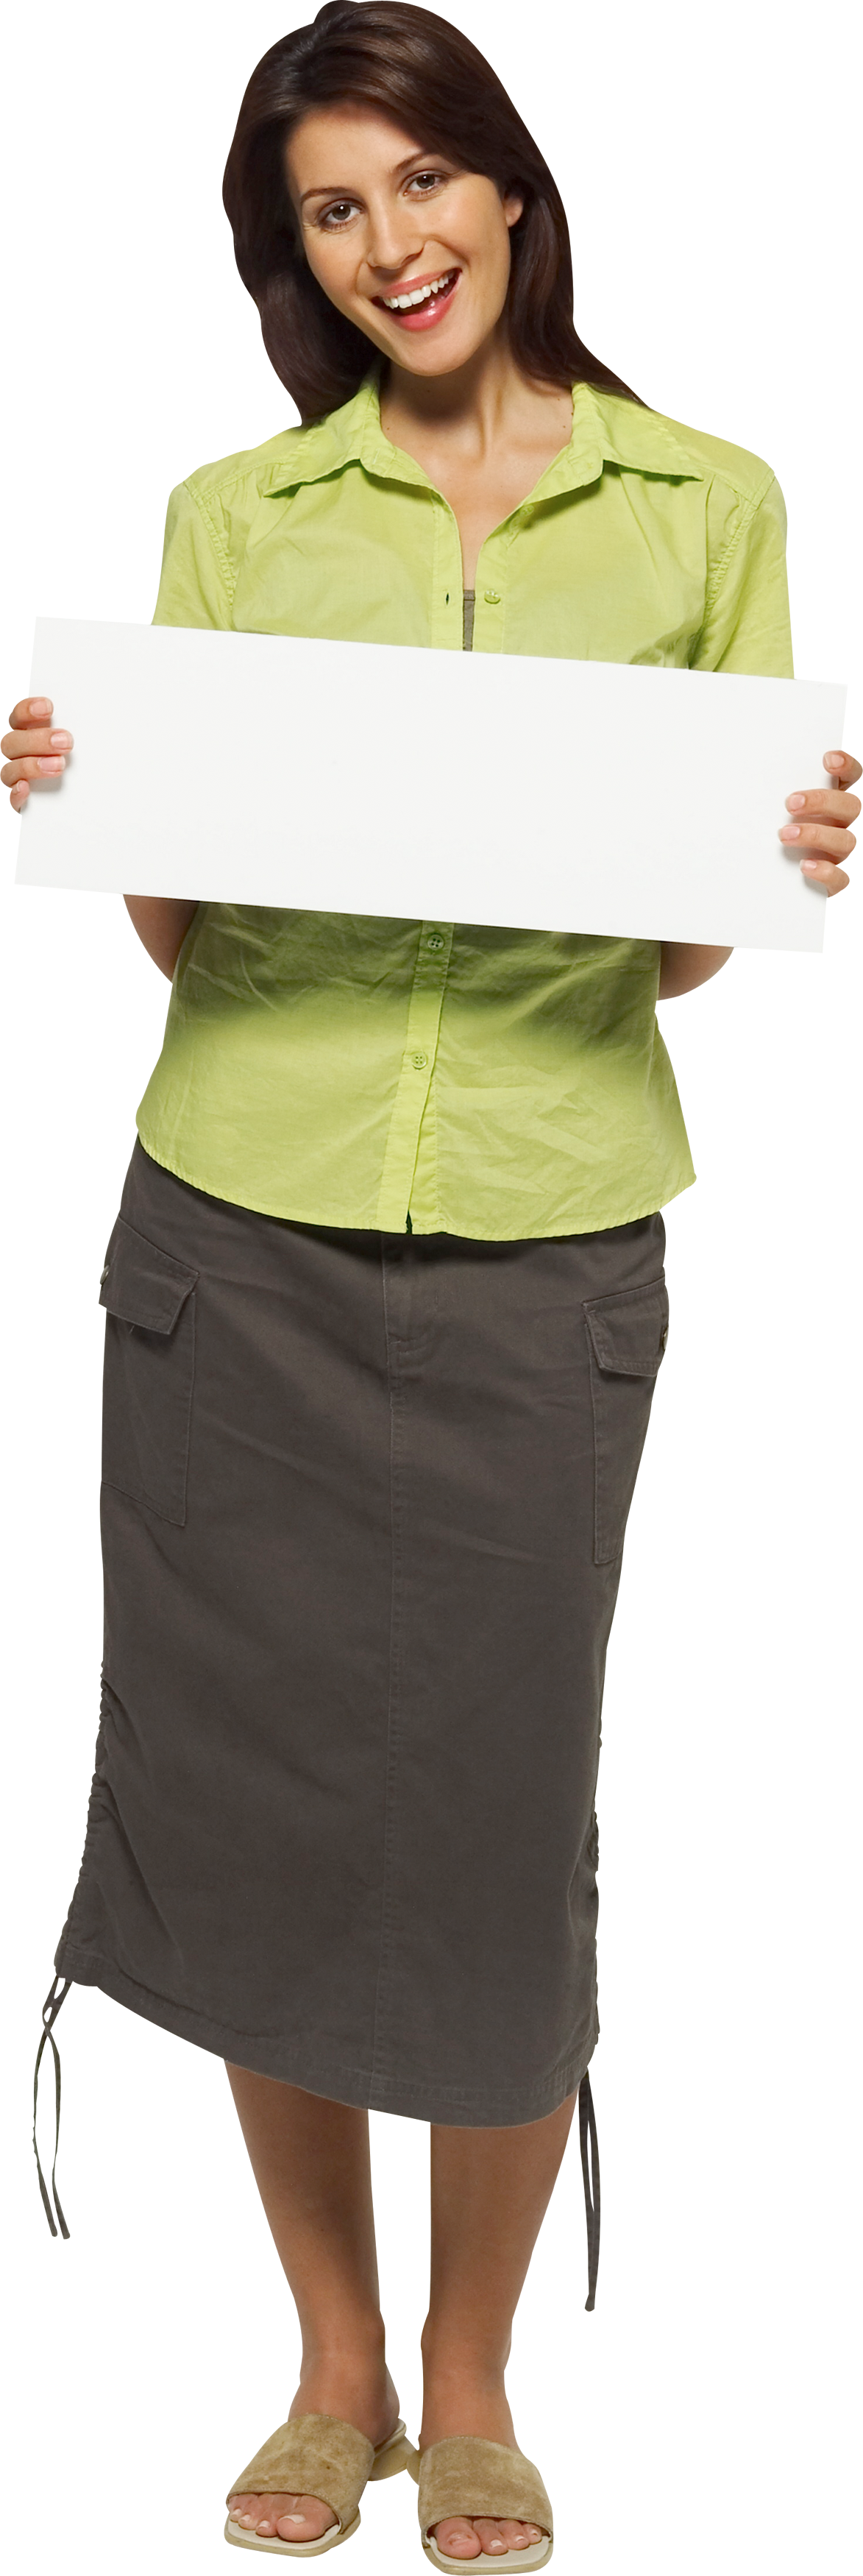 Girls png images free. Lady clipart standing